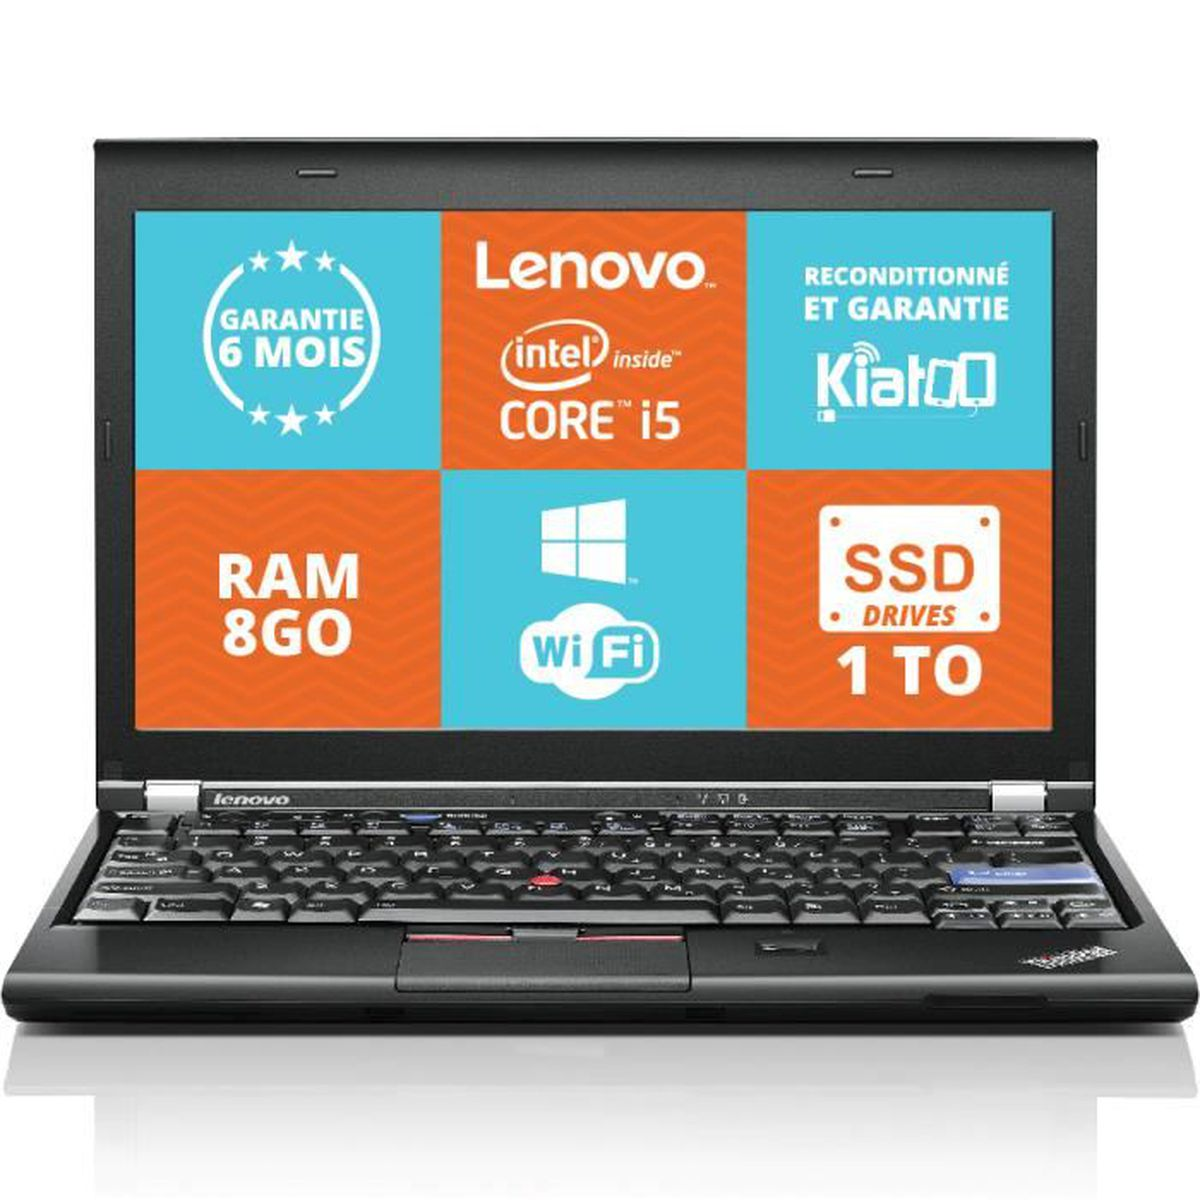 ordinateur portable lenovo thinkpad x220 ultrabook intel core i5 8go ram 1to ssd drives disque. Black Bedroom Furniture Sets. Home Design Ideas